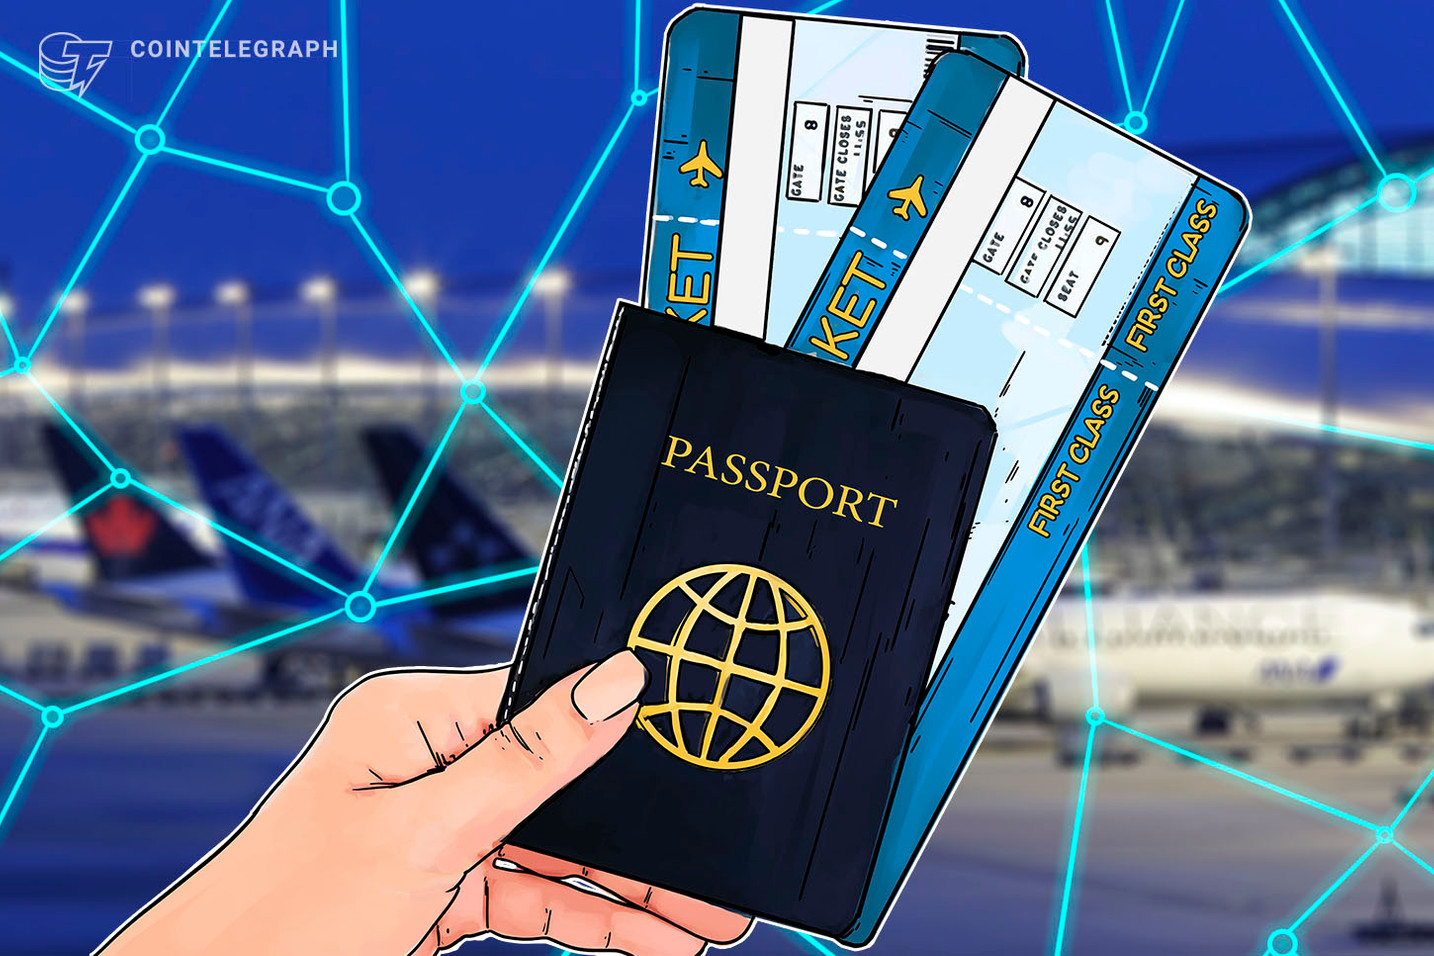 German Airline Company Hahn Air Issues Tickets on Blockchain